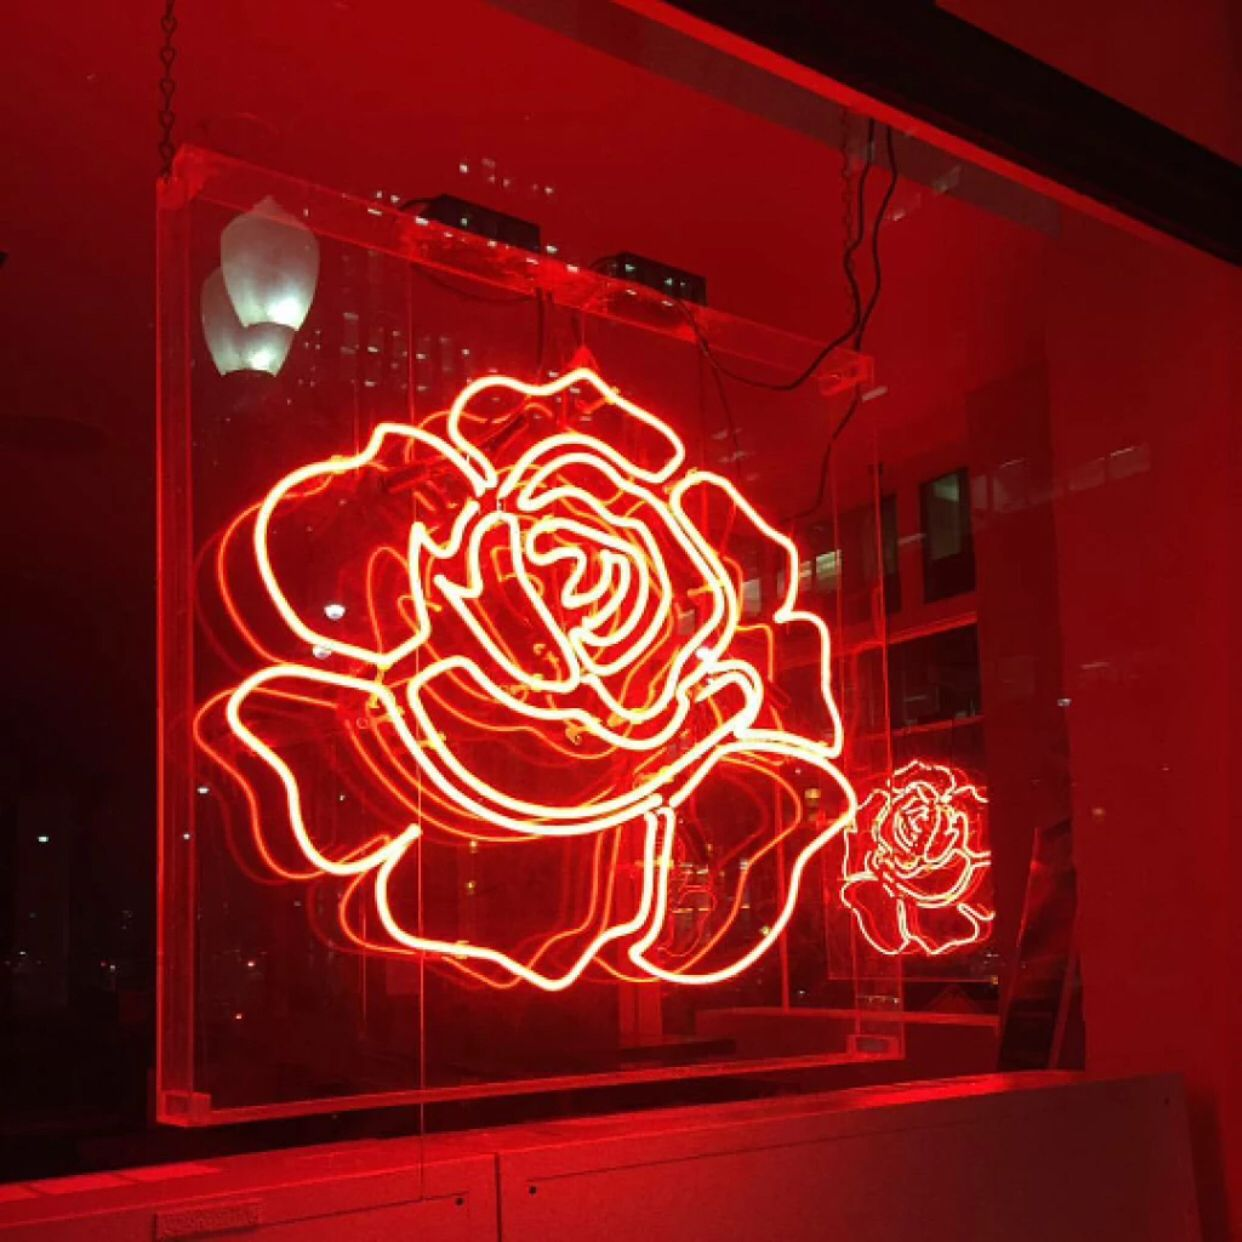 Neon Rose Aesthetic colors, Neon signs